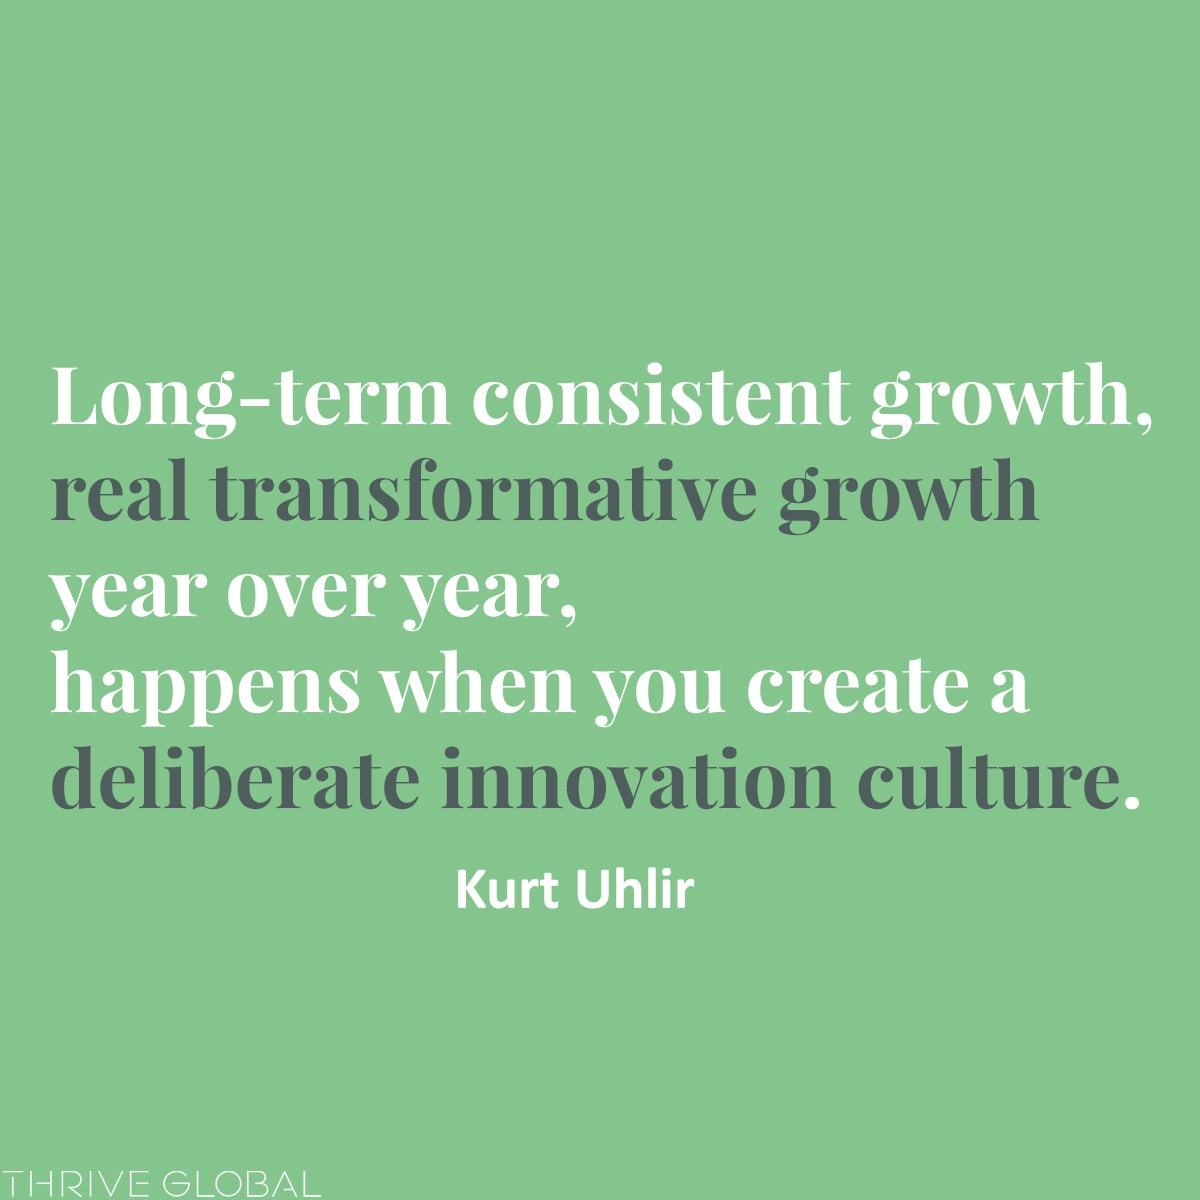 a deliberate innovation culture